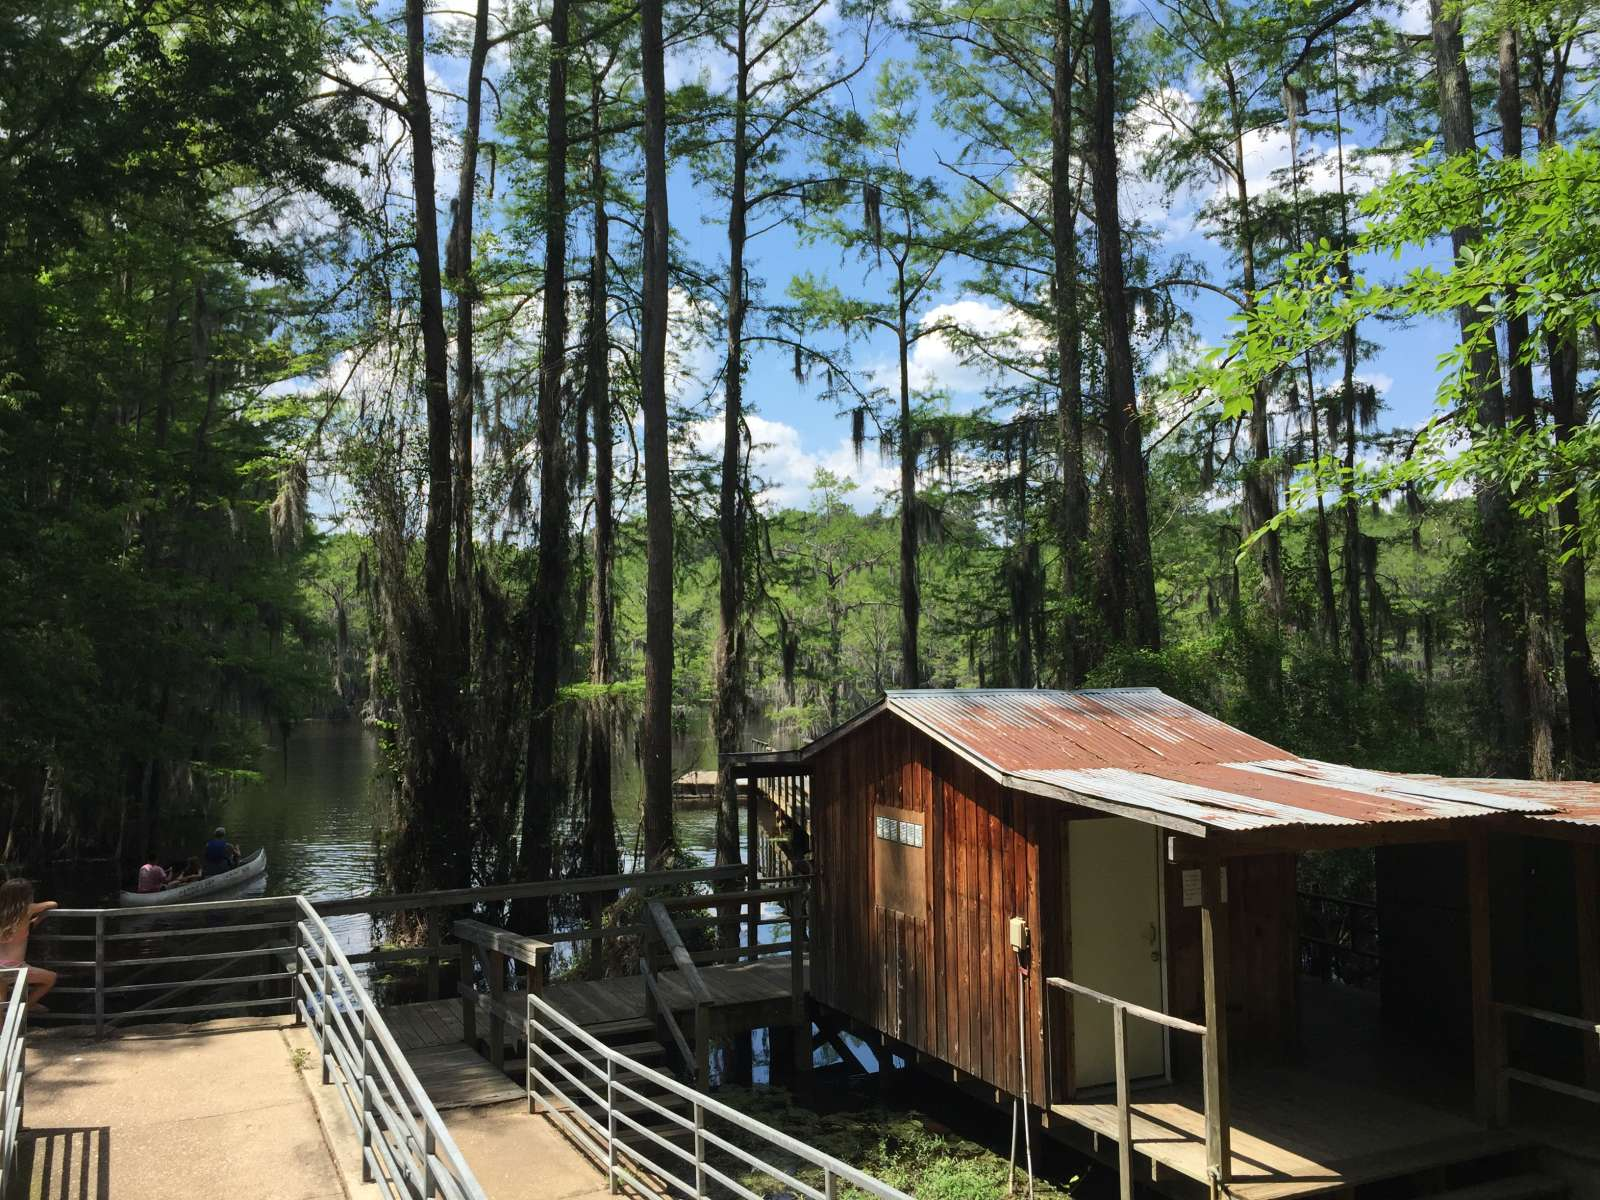 Superieur ... Sarah V.u0027s Photo At Caddo Lake Campground ...